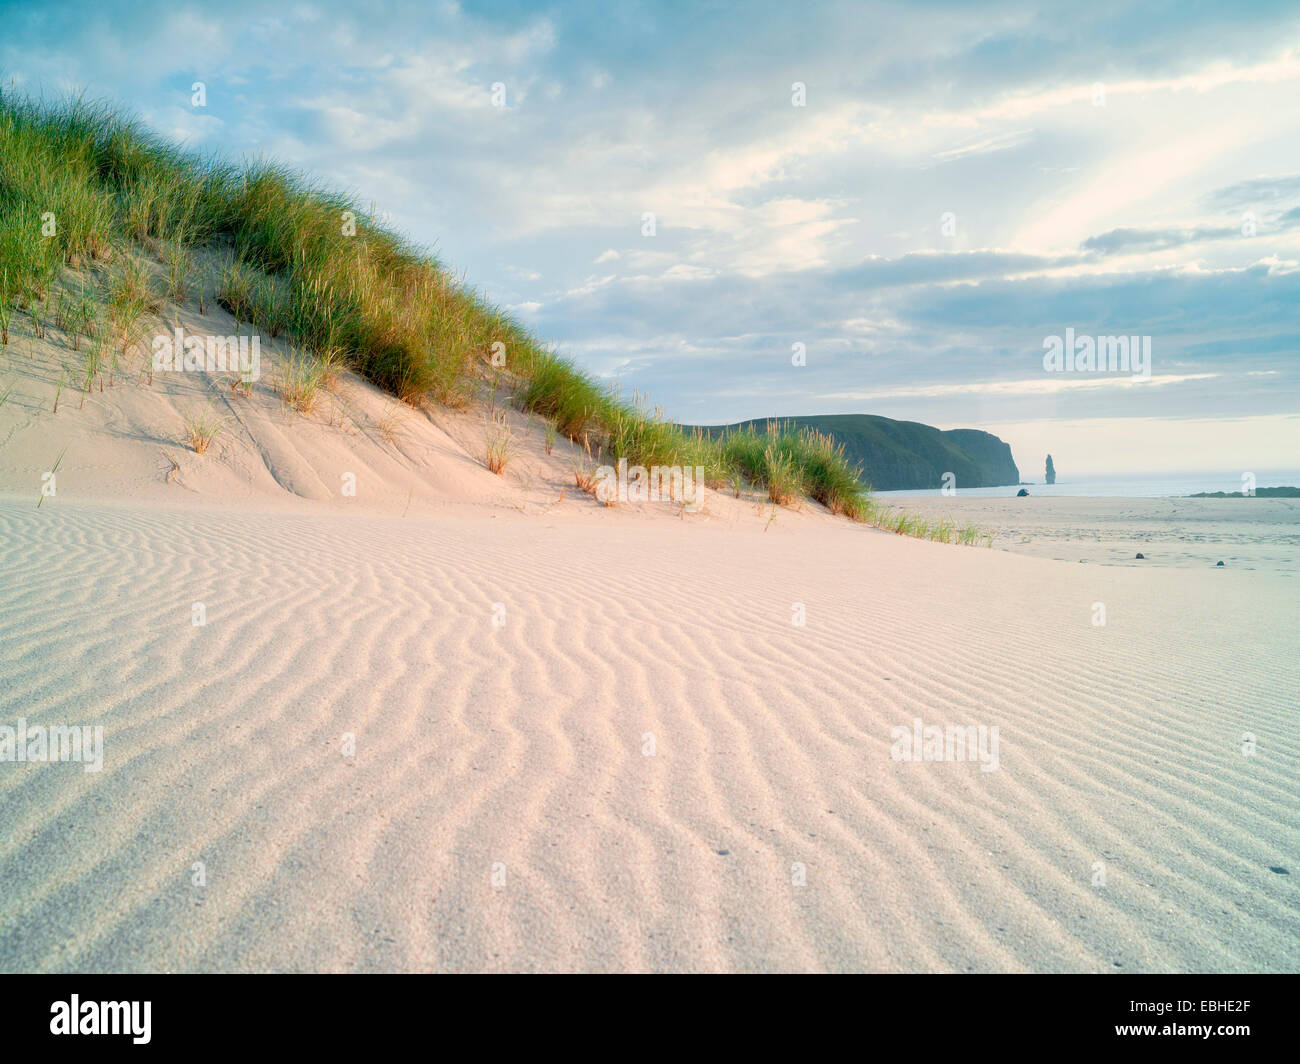 Remote Sandwood Bay, Cape Wrath, North West Highlands of Scotland - Stock Image